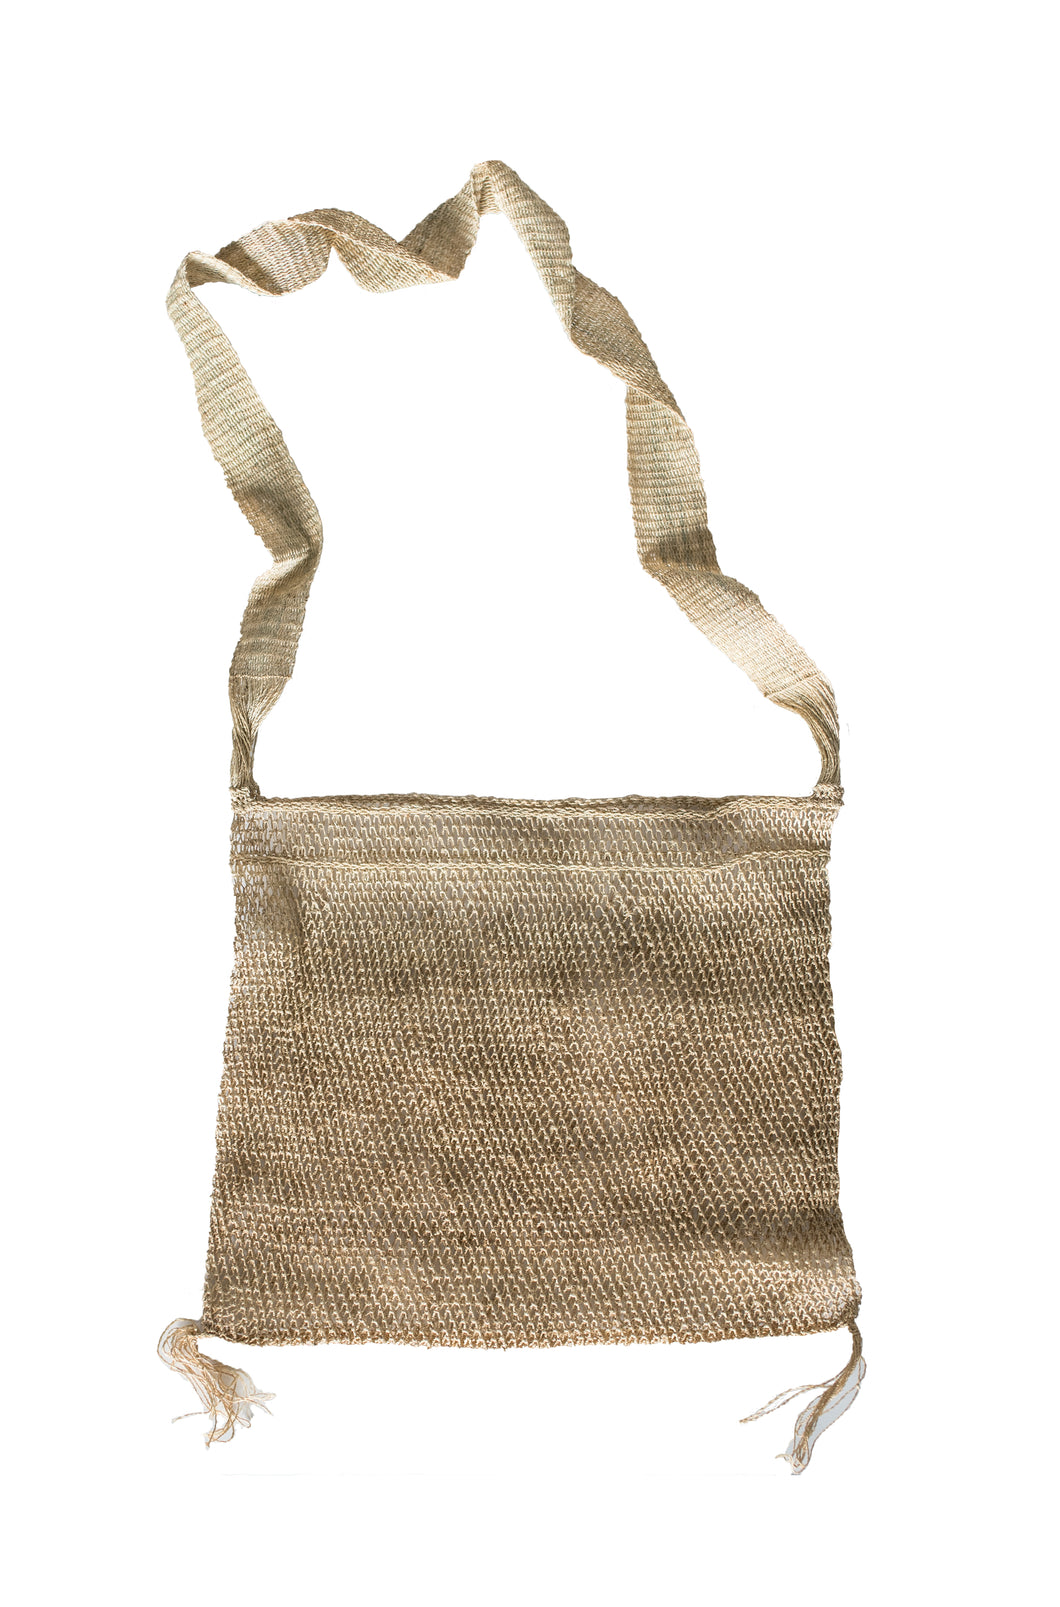 Jungle Vine Reuseable Eco Bag from Laos